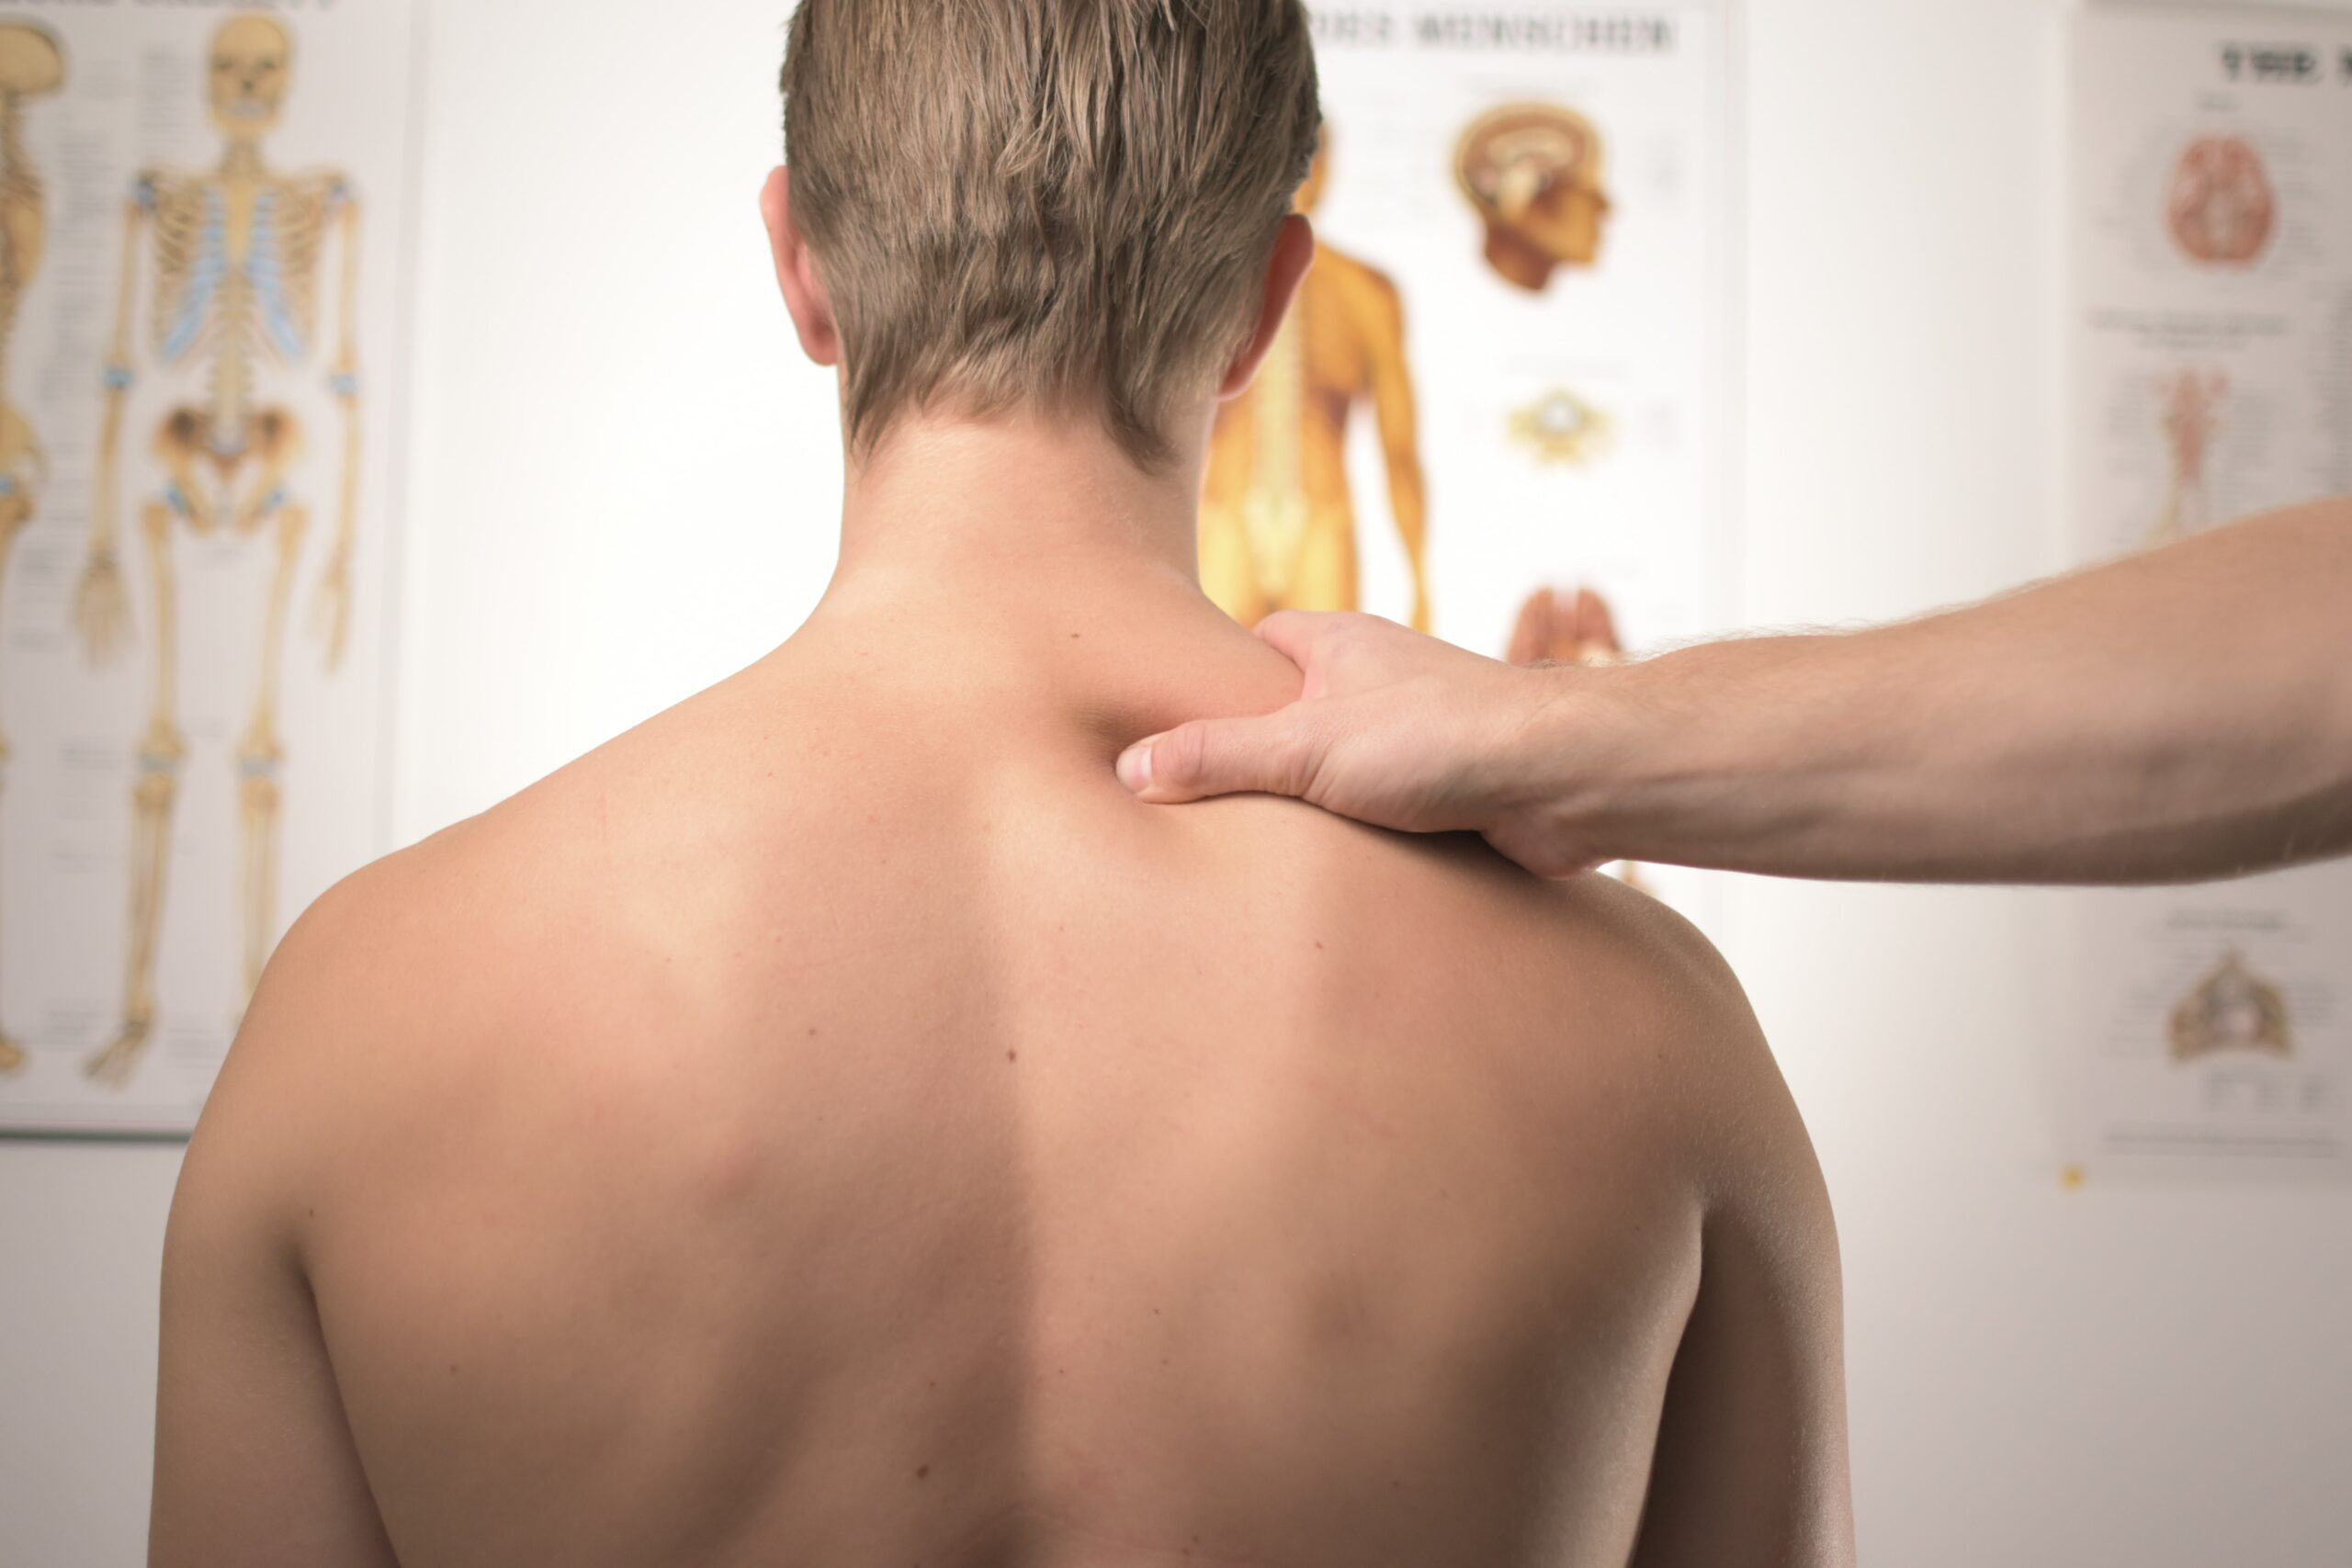 working days are lost due to musculoskeletal disorders